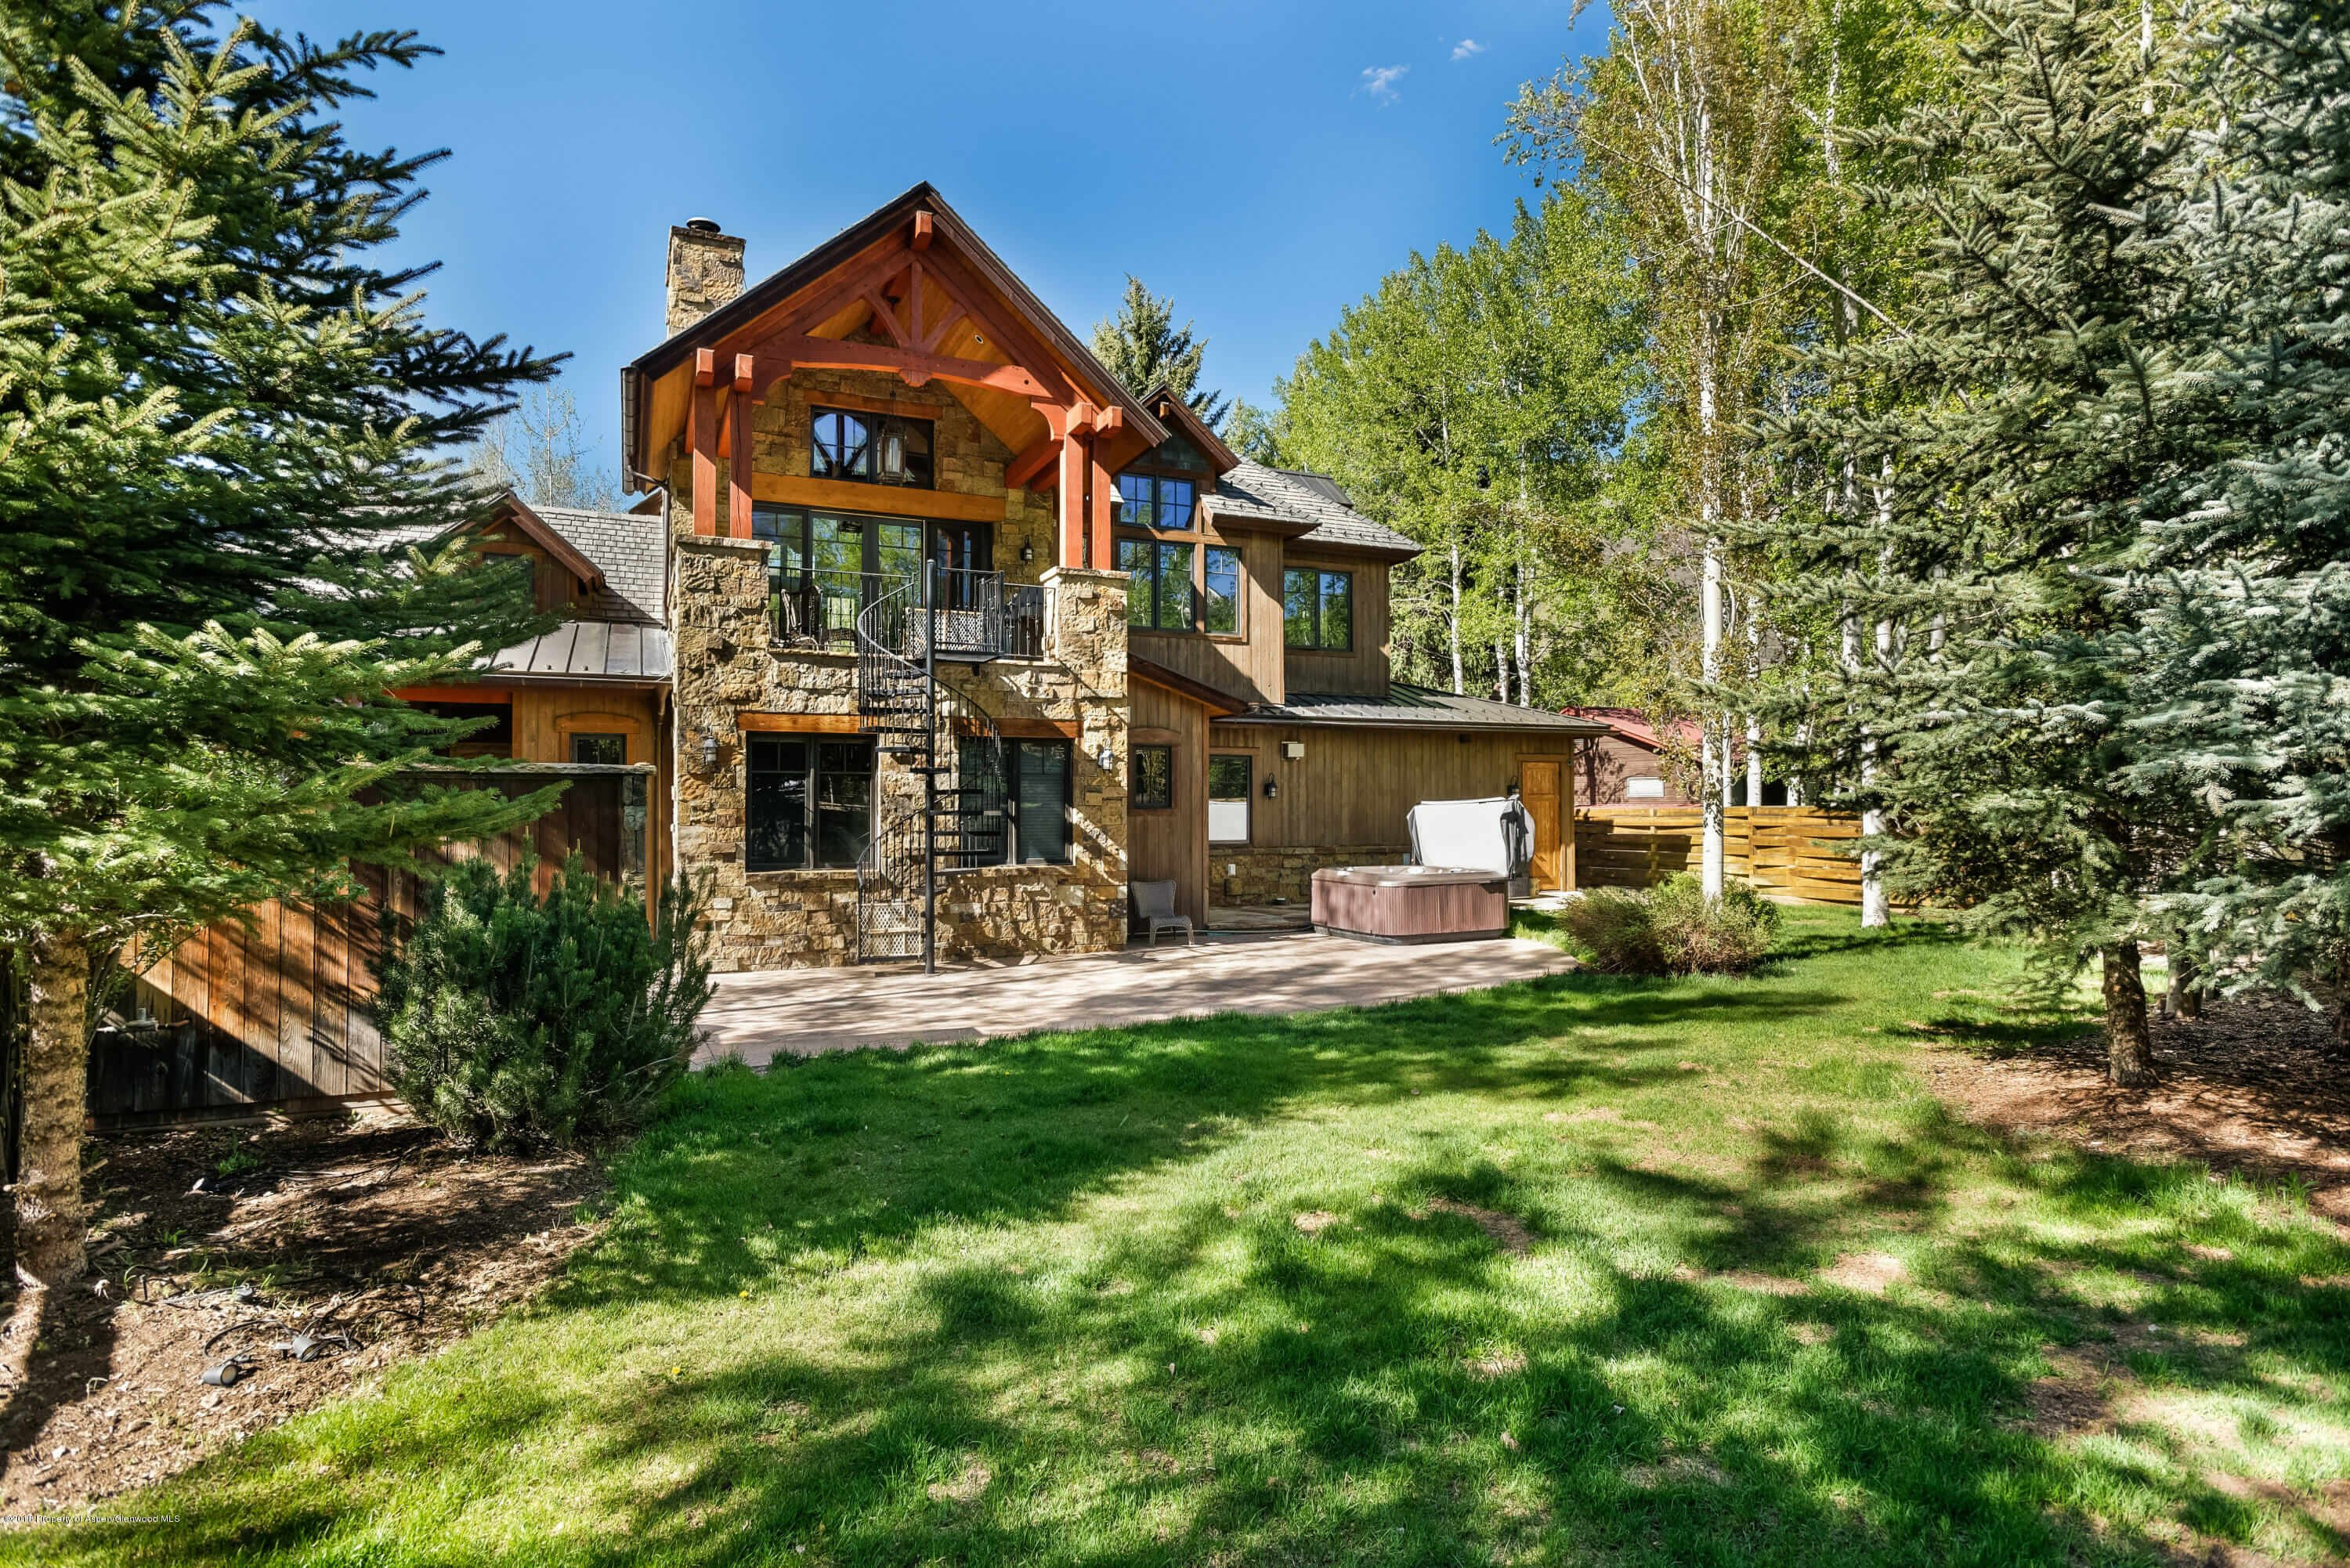 1395 Snowbunny Lane Aspen CO Home Sells in Deal Territory at $4.15M/$873 sq ft Image